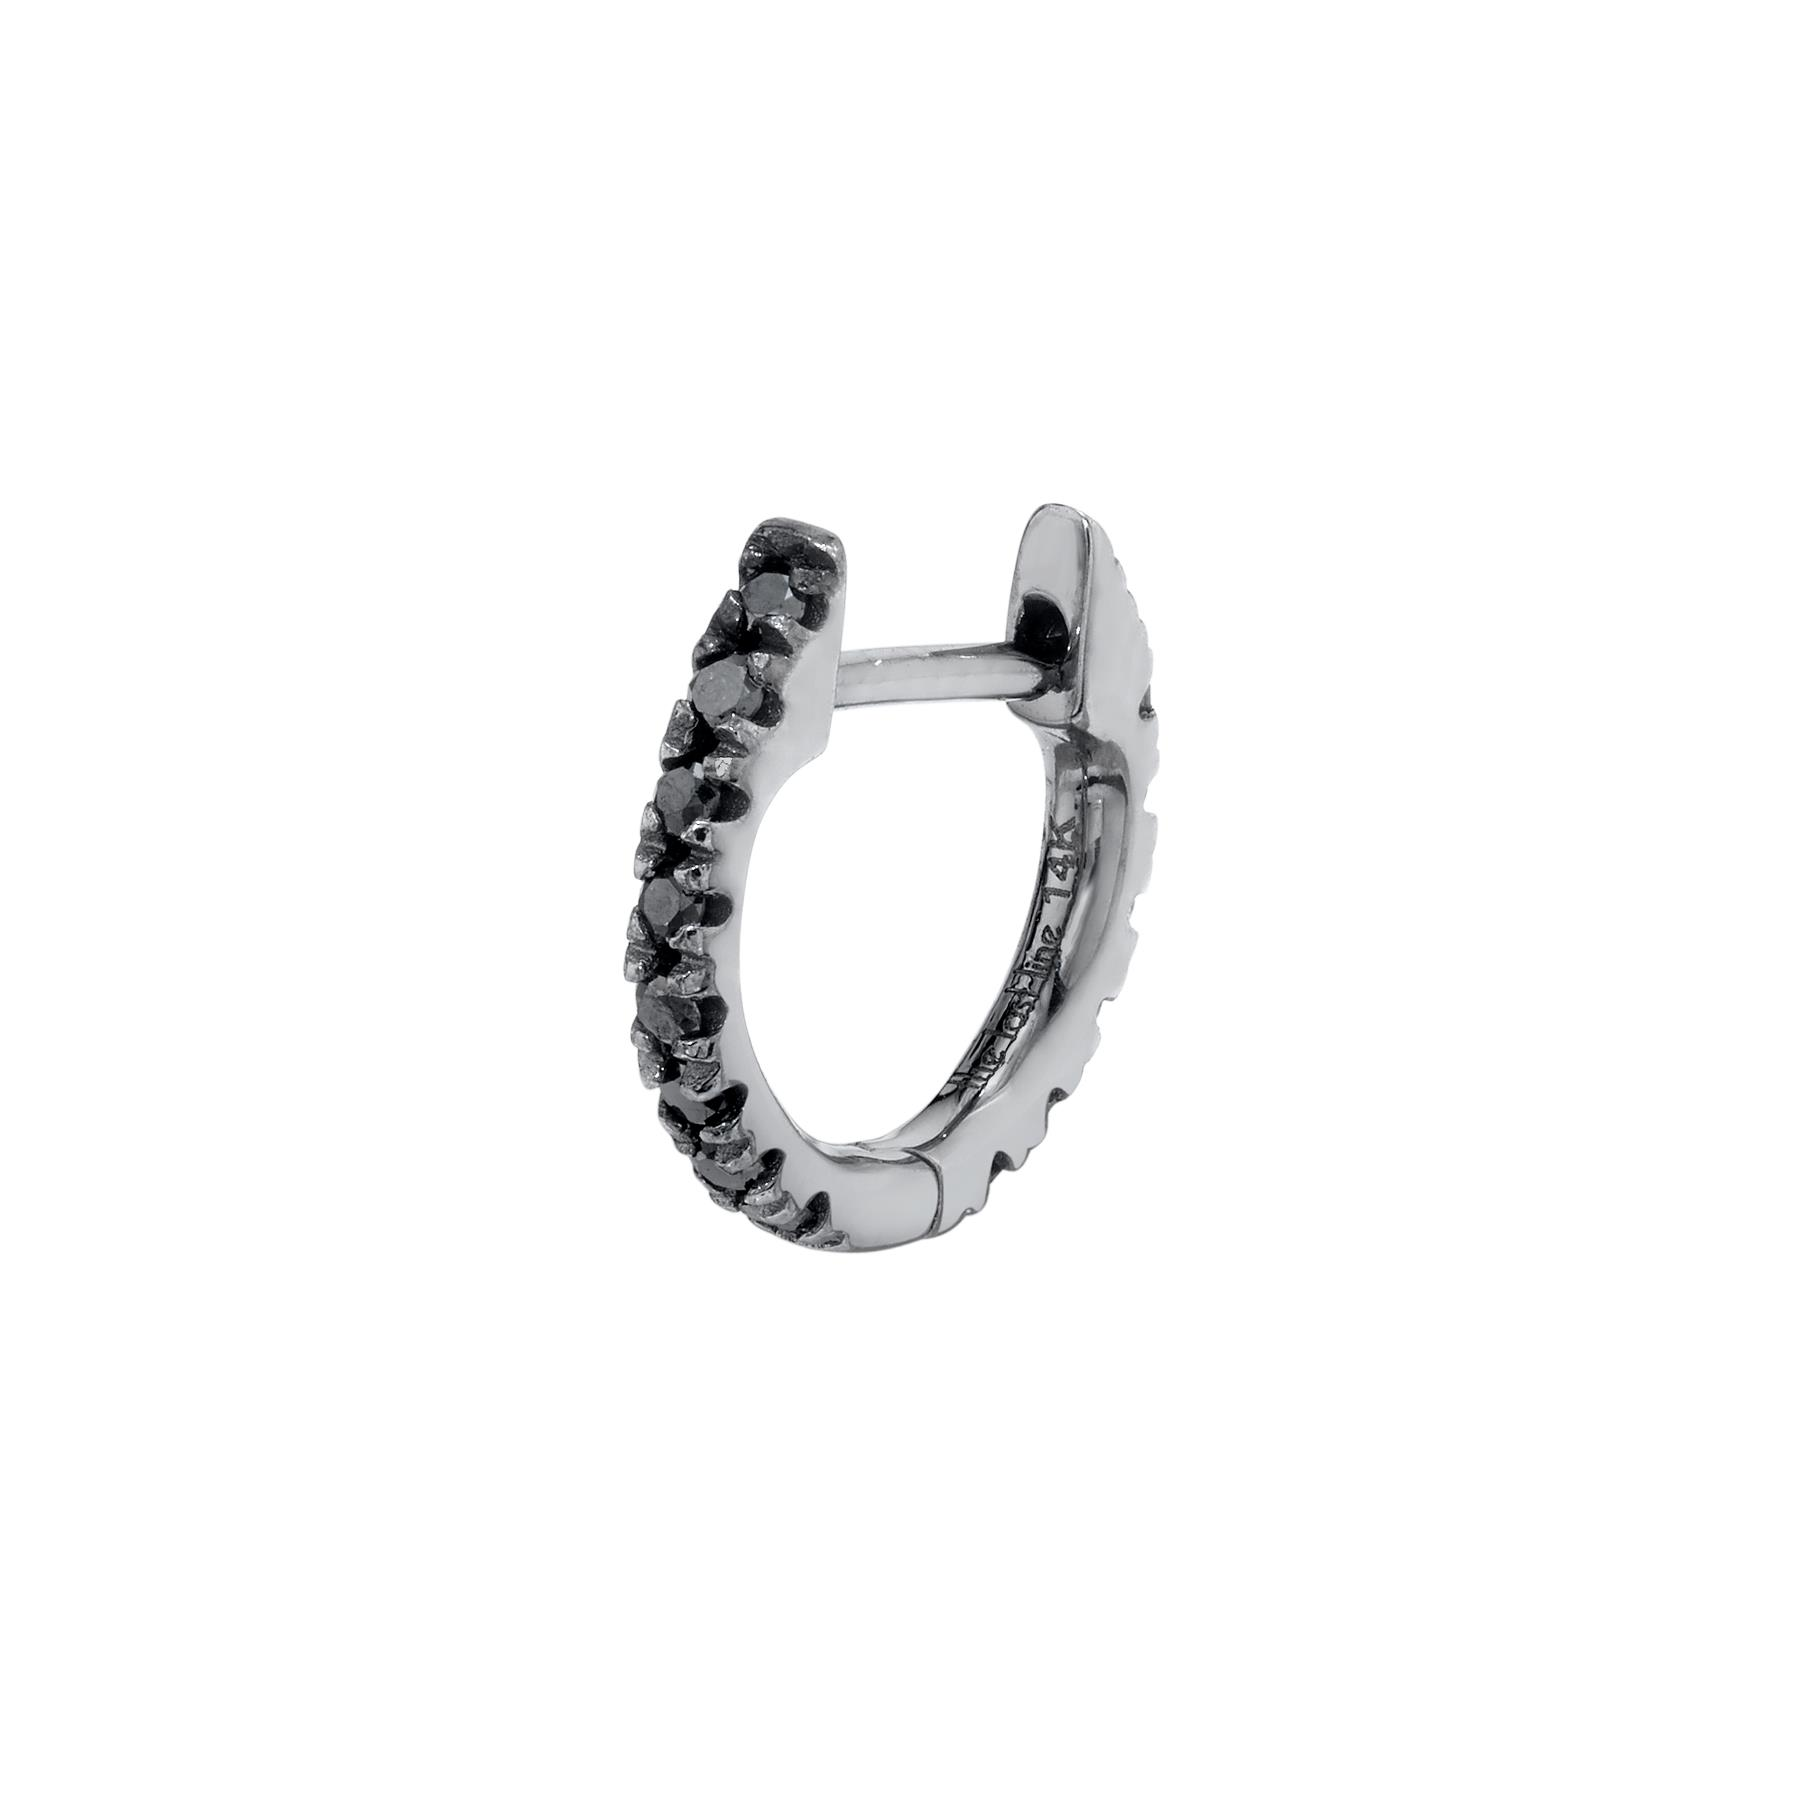 MEDIUM BLACK DIAMOND HUGGIE EARRING